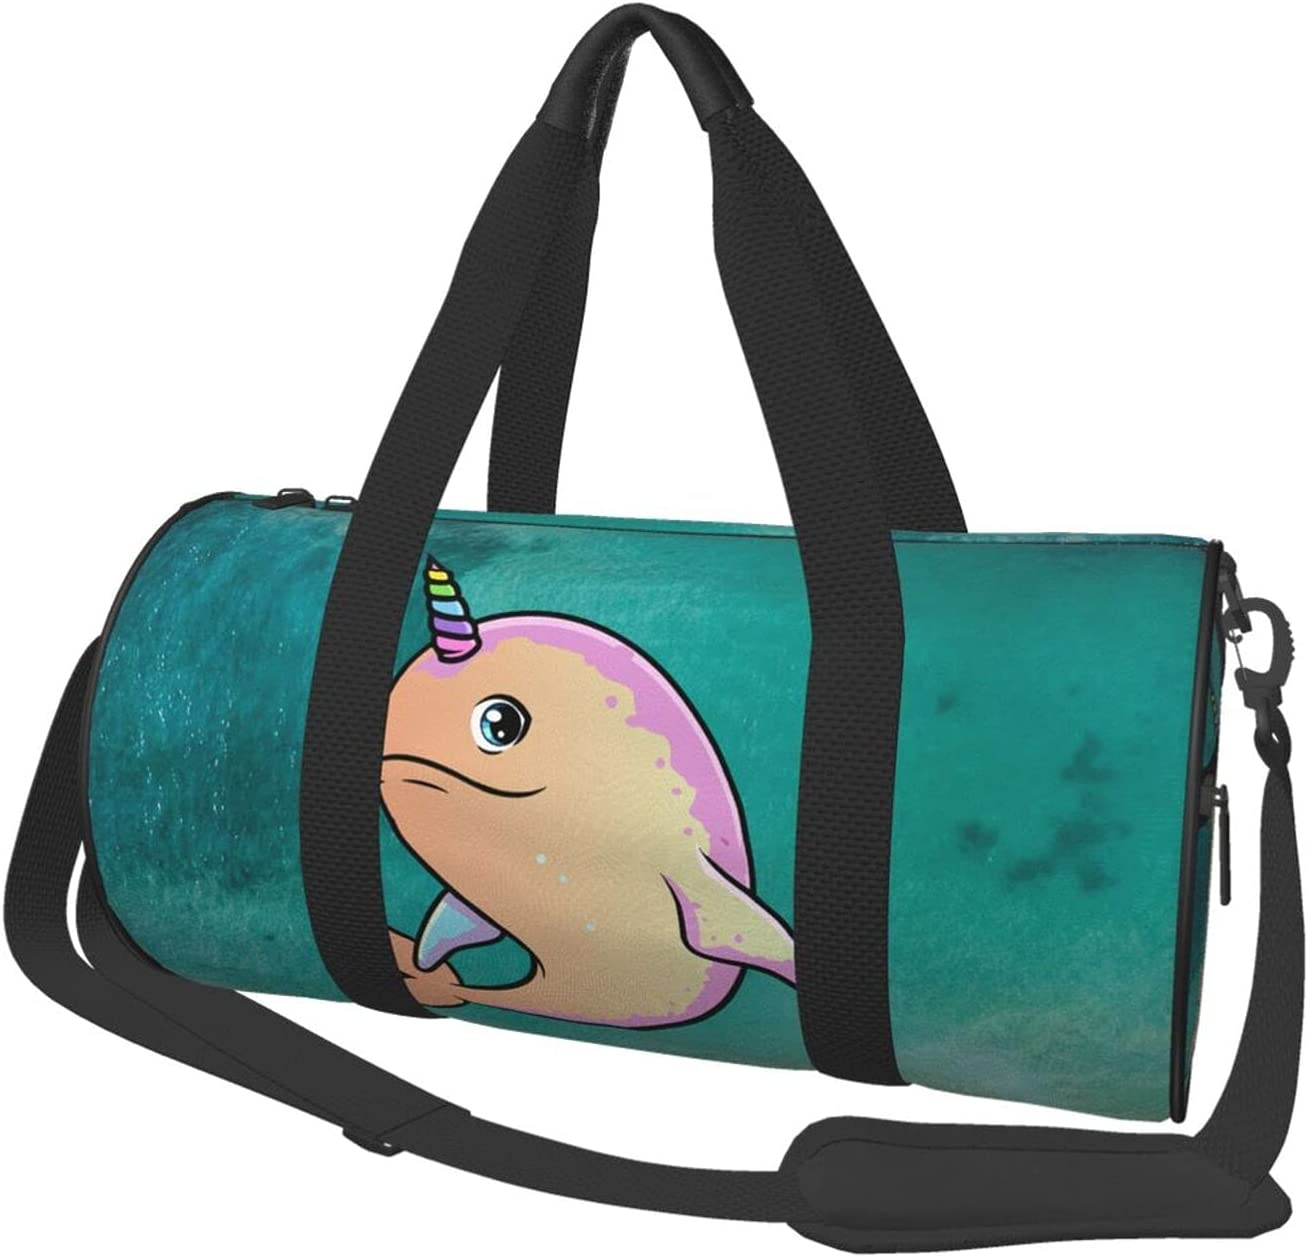 Save The Narwhals Travel Popular brand in the world Duffel Strap Ranking TOP3 Bagwith Tote Bag Shoulder